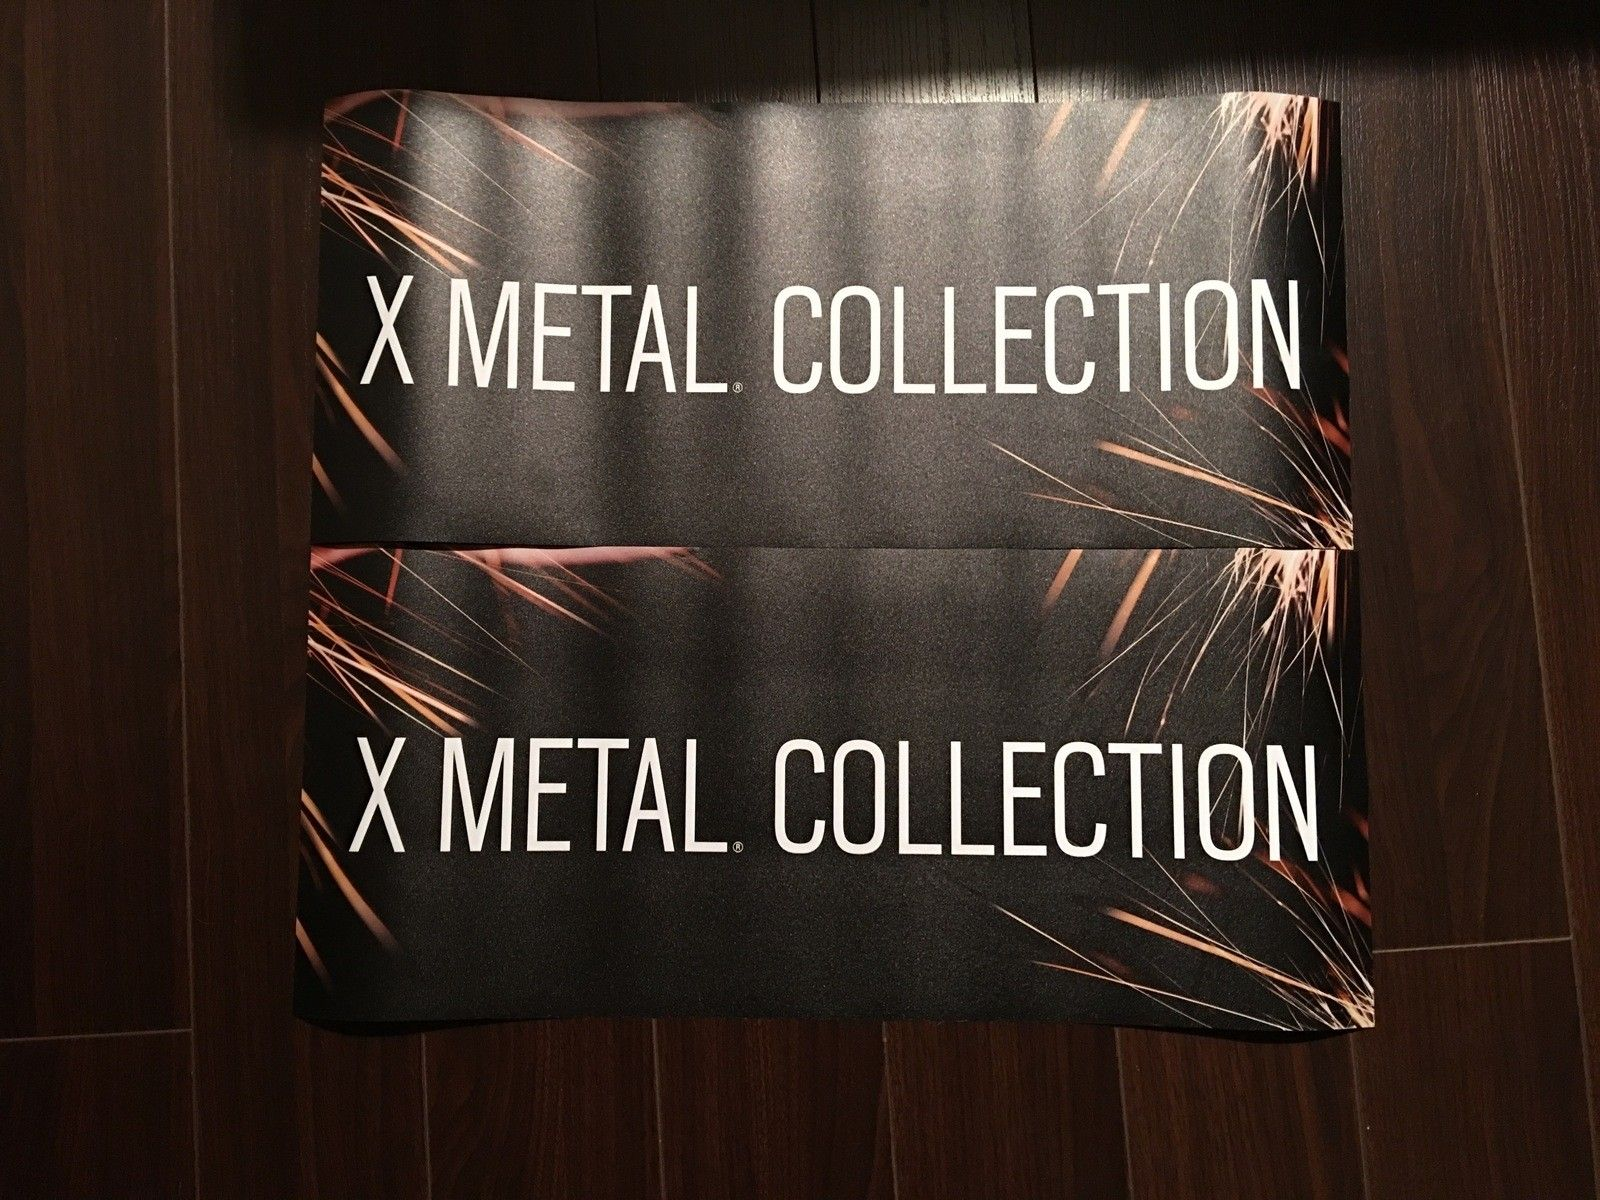 Posters/Banners & Magnets - IMG_0399.jpg